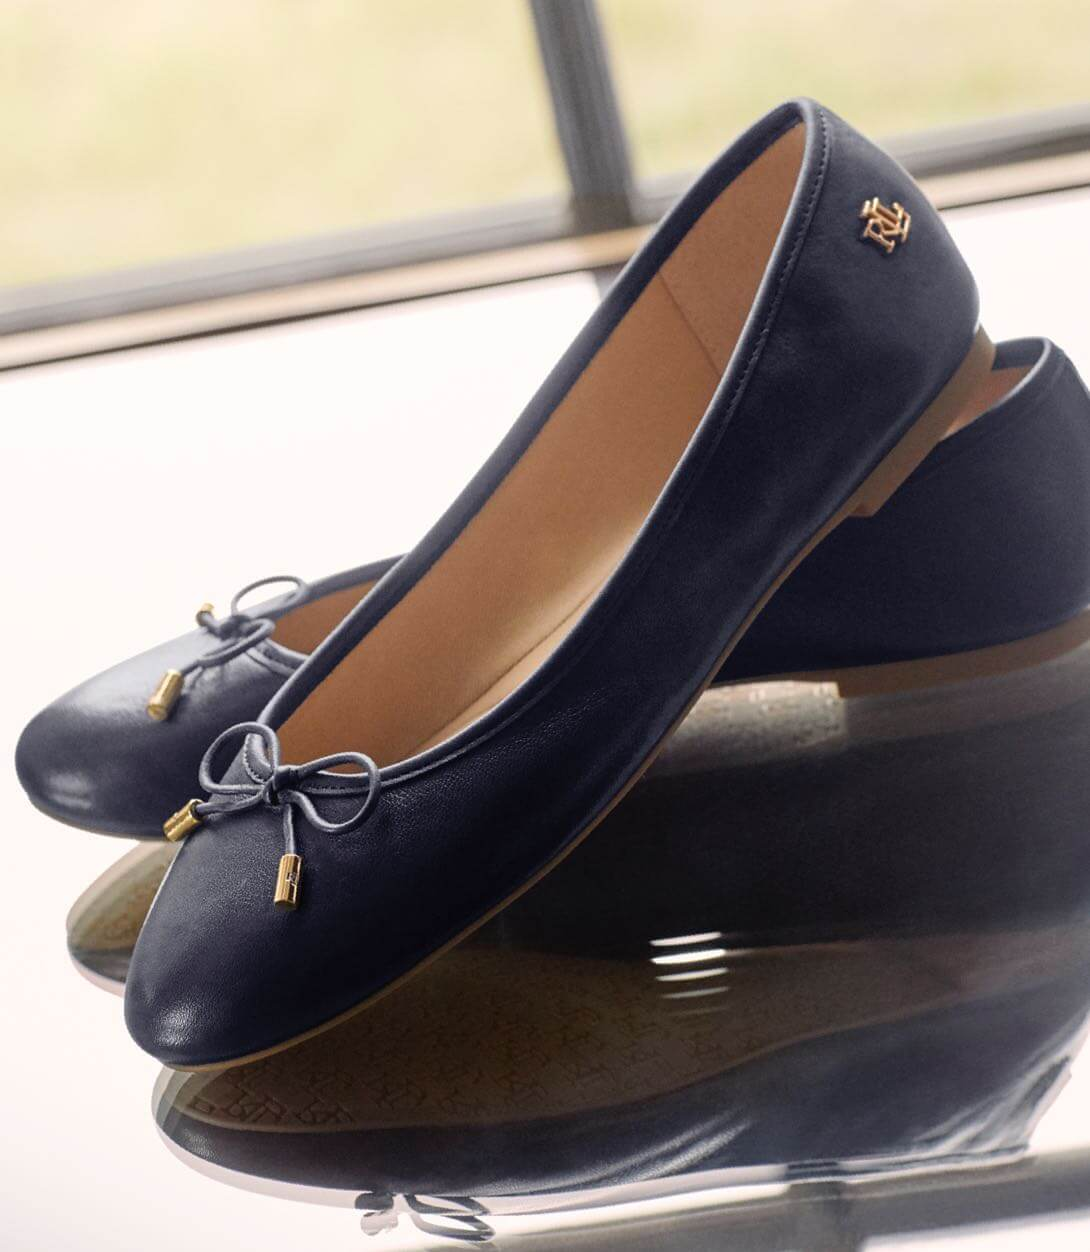 Navy leather flats with ties at the toe.